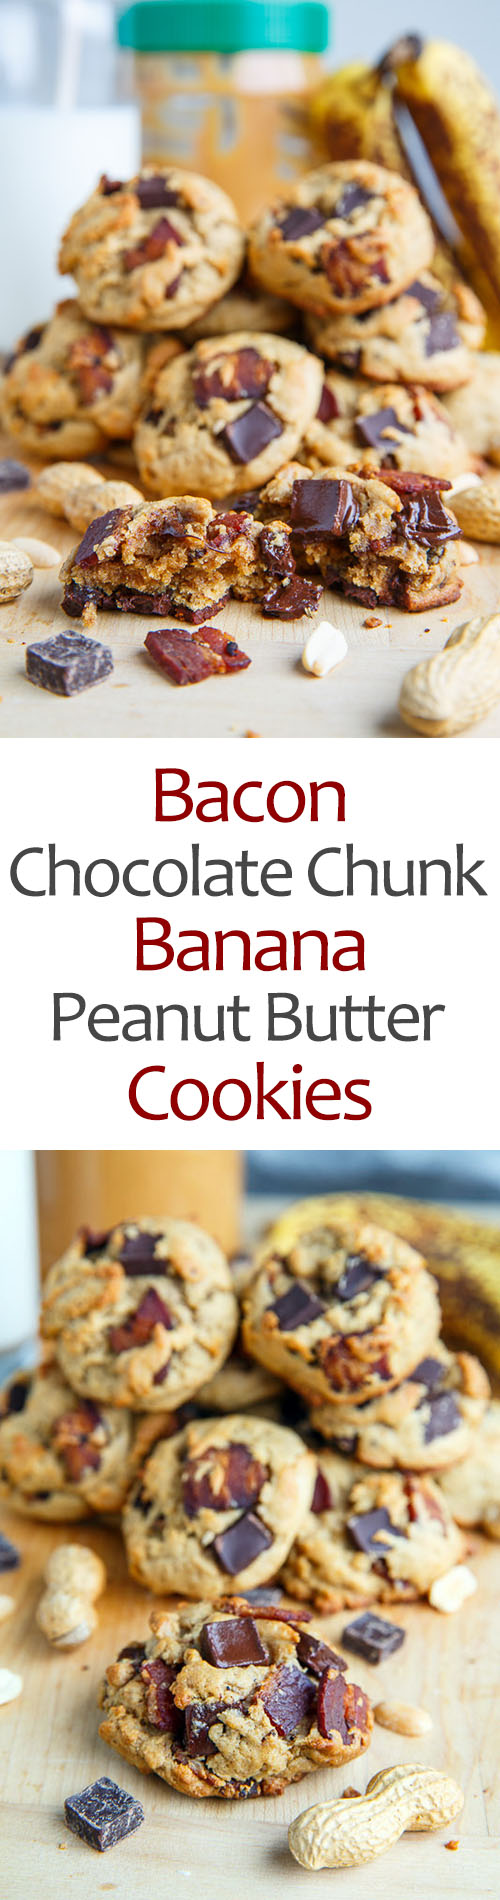 Soft and Chewy Banana Peanut Butter Cookies with Chocolate Chunks and Bacon